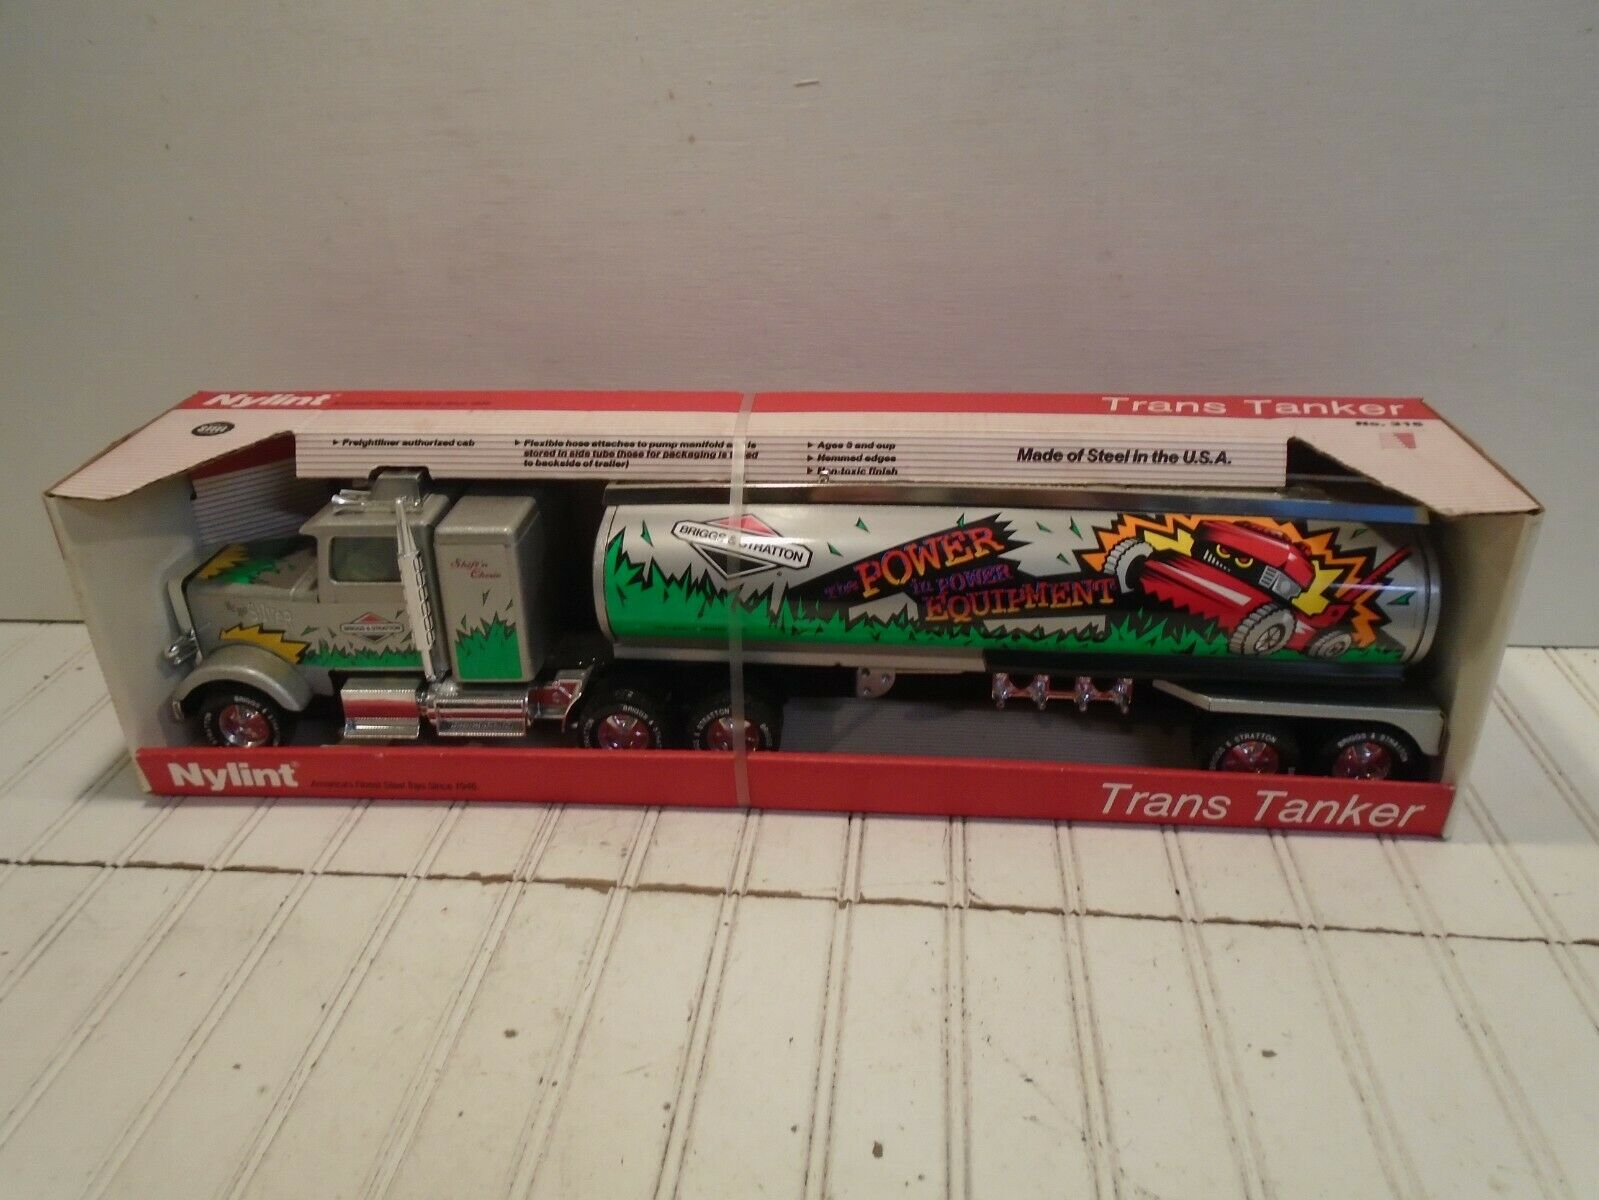 Nylint Briggs & Stratton Trans Tanker Truck No. 315 Made in the USA